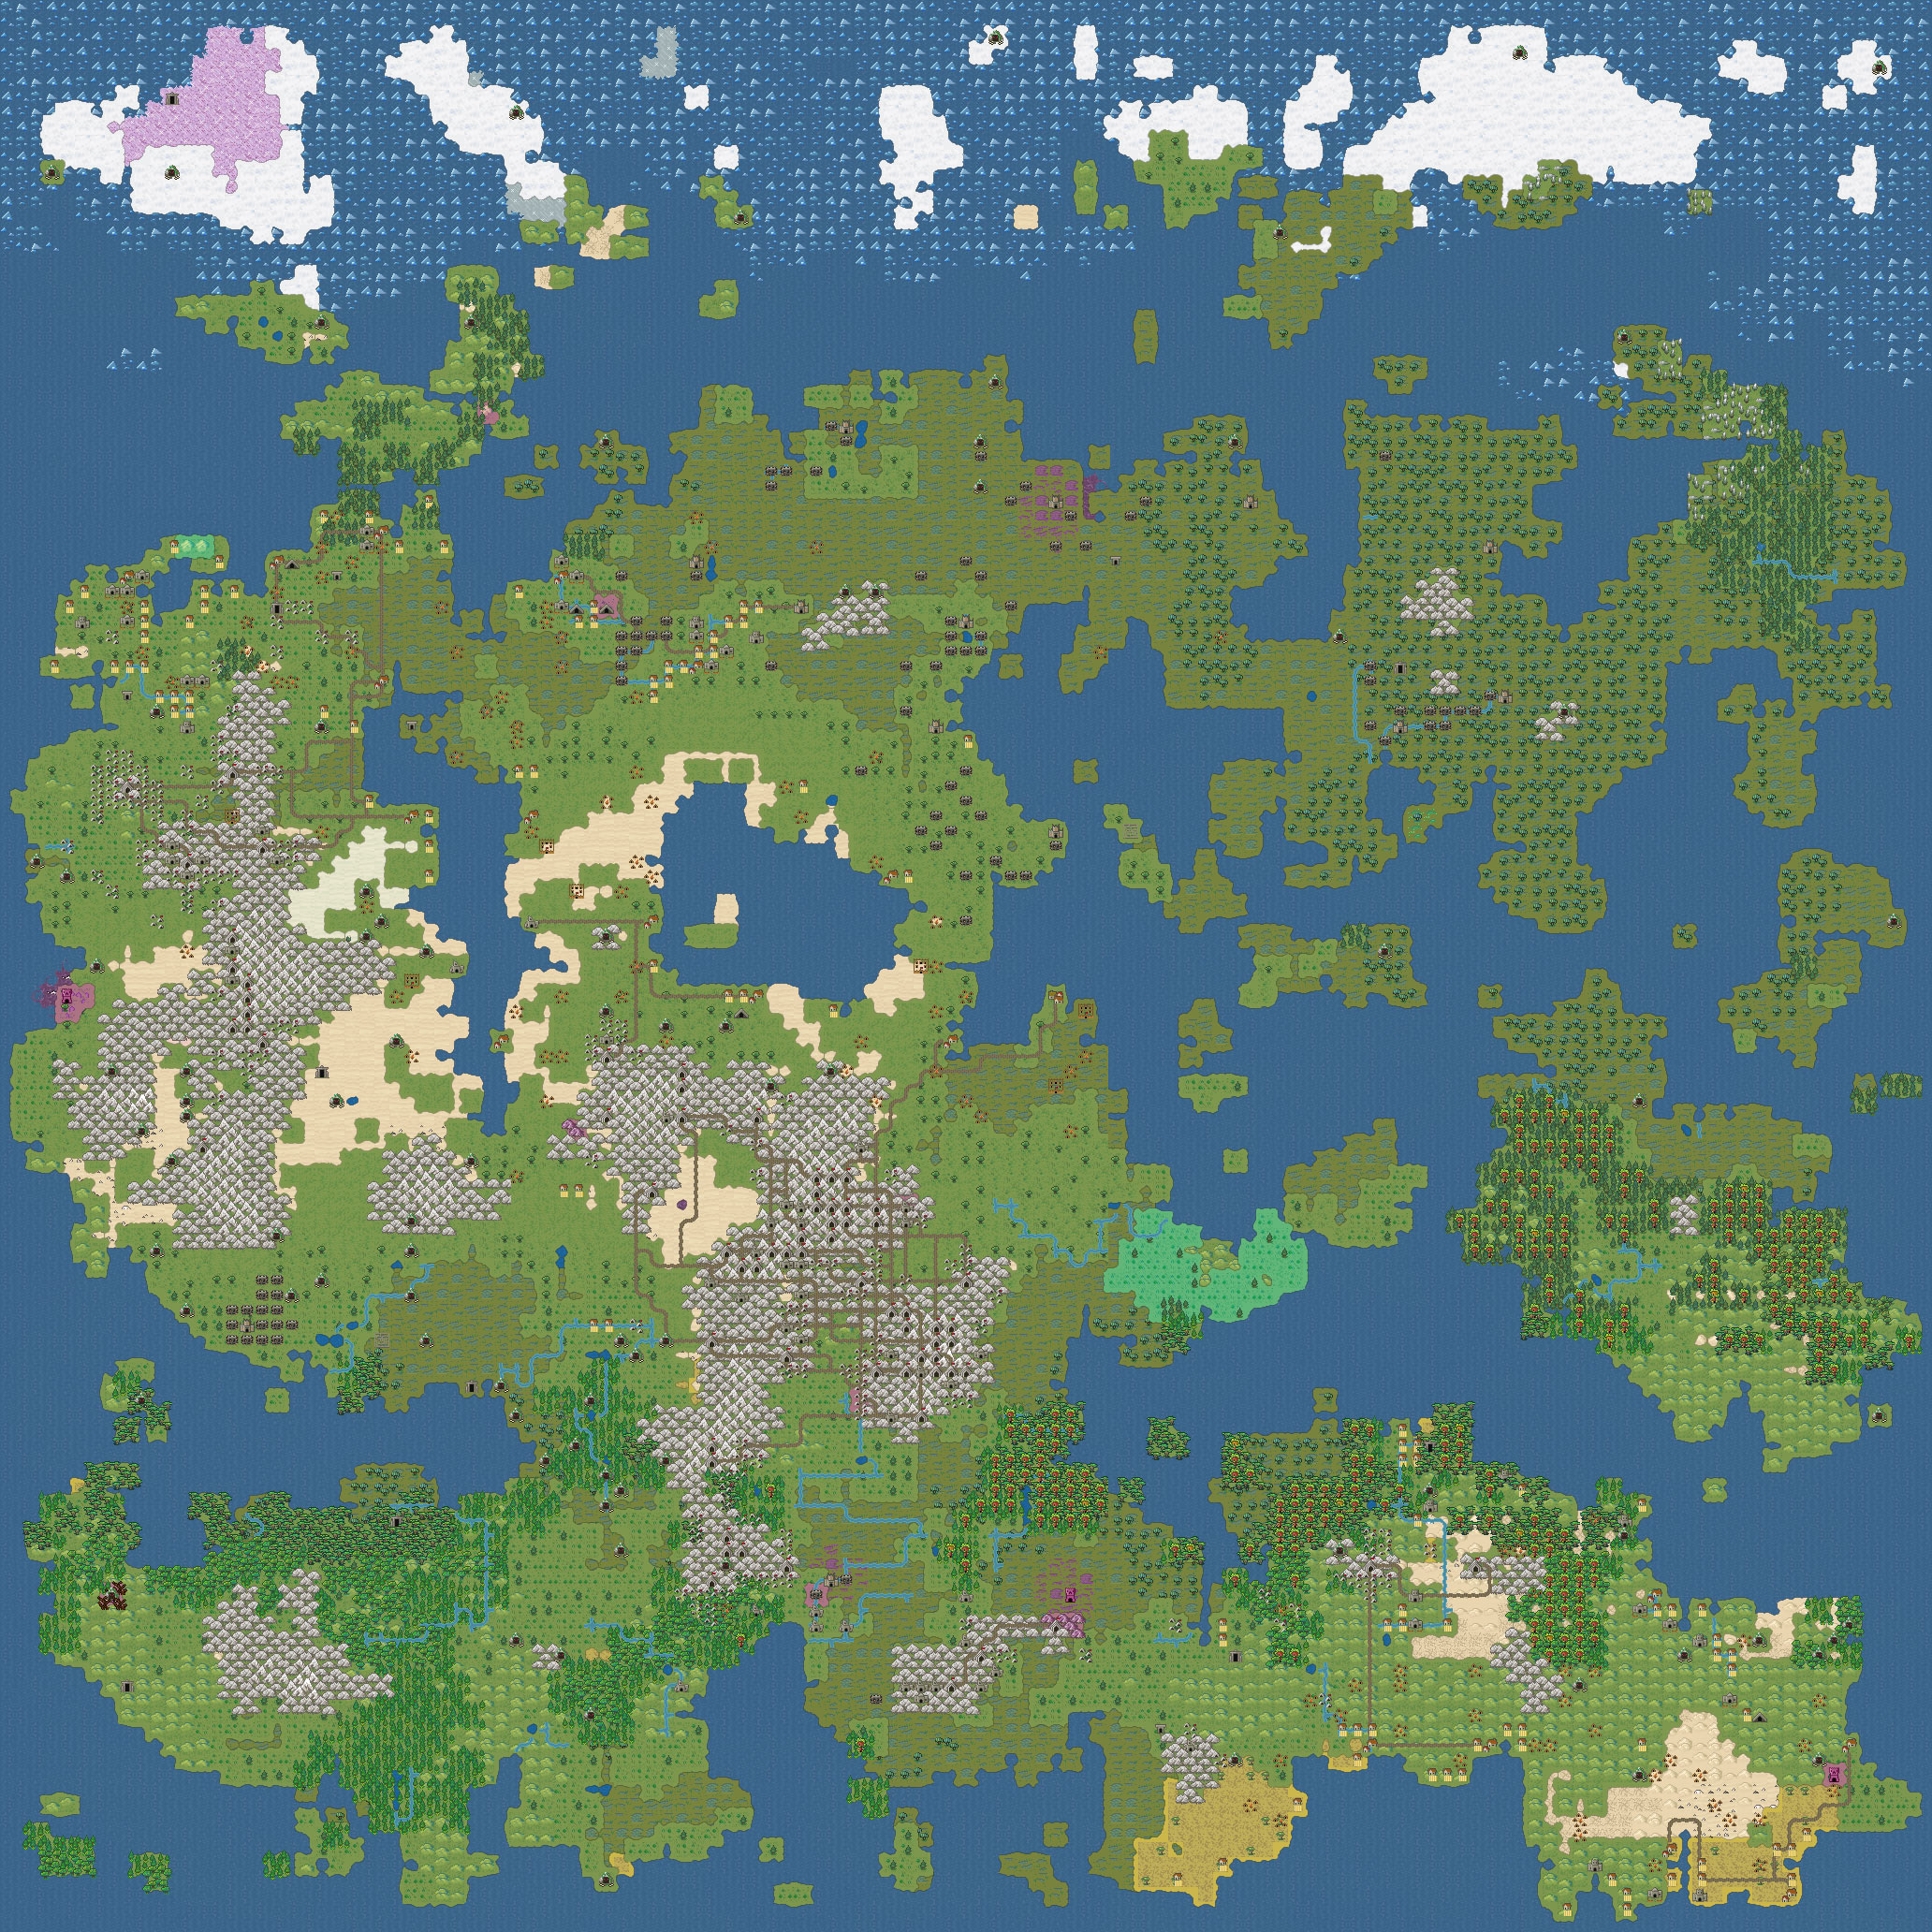 Dwarf Fortress has a new world map tileset for Steam